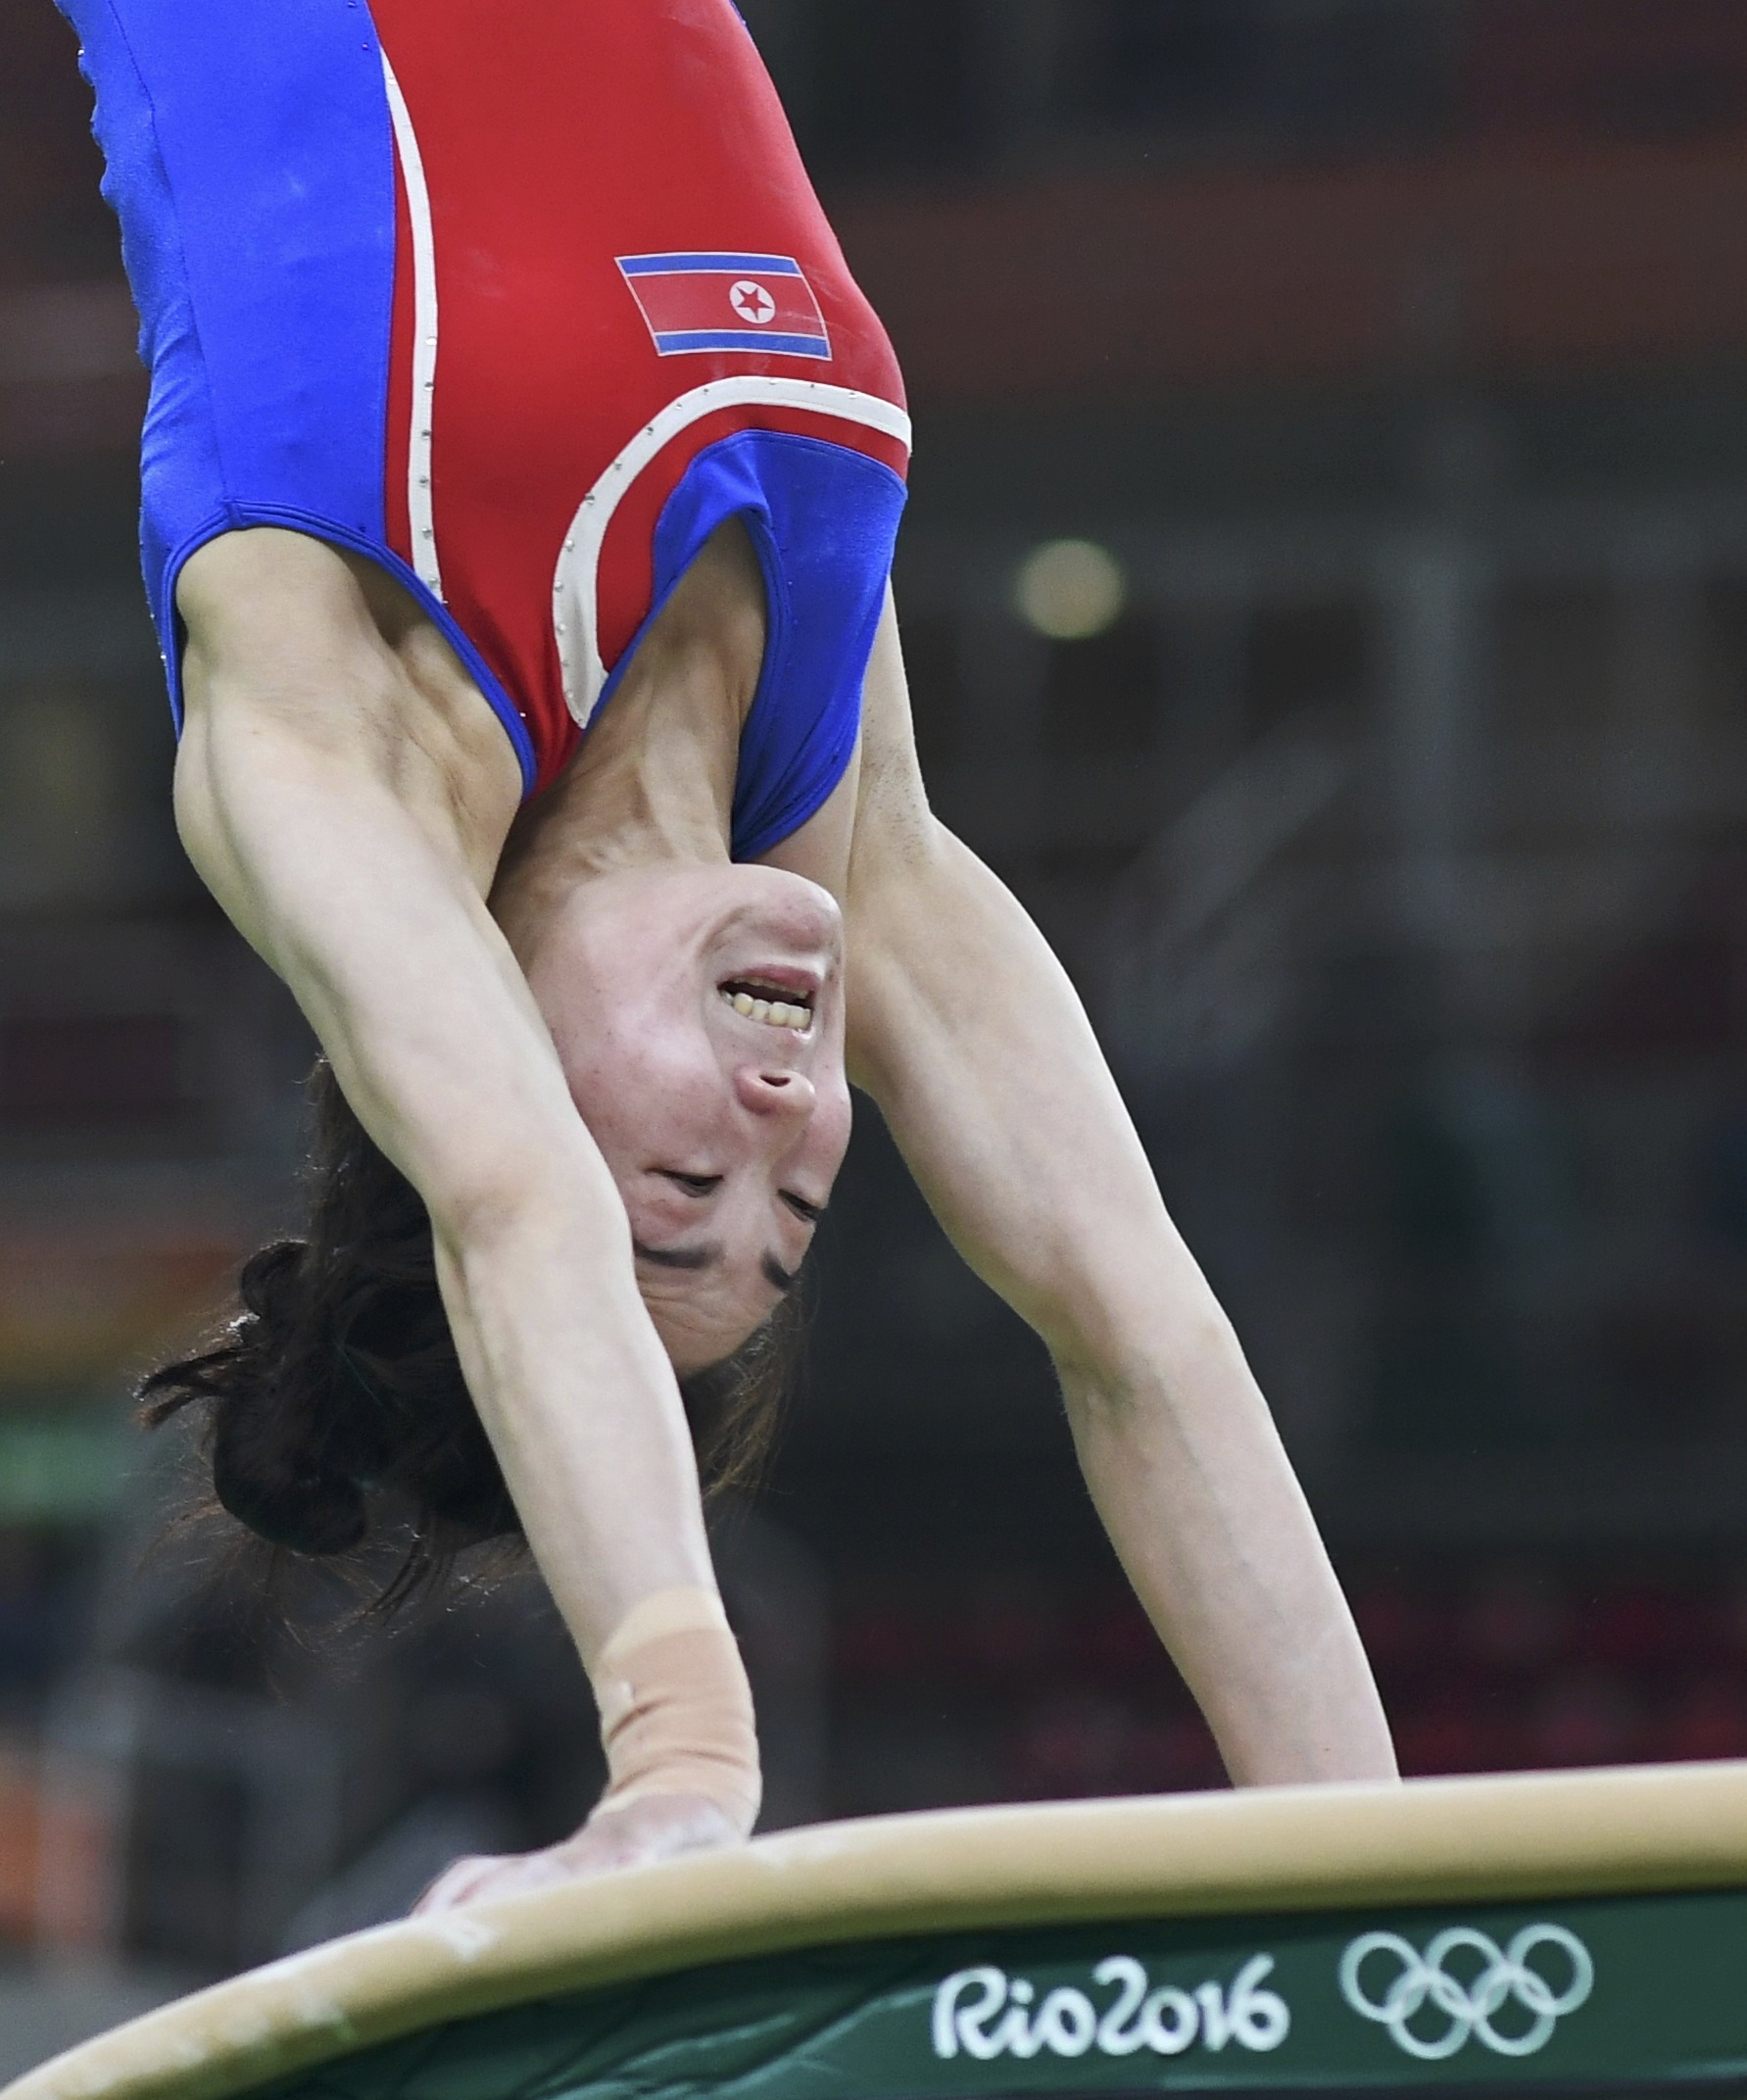 2016 Rio Olympics - Gymnastics training - Rio Olympic Arena - Rio de Janeiro, Brazil - 04/08/2016. Hong Un Jong (PRK) of North Korea trains on the vault. REUTERS/Dylan Martinez FOR EDITORIAL USE ONLY. NOT FOR SALE FOR MARKETING OR ADVERTISING CAMPAIGNS.